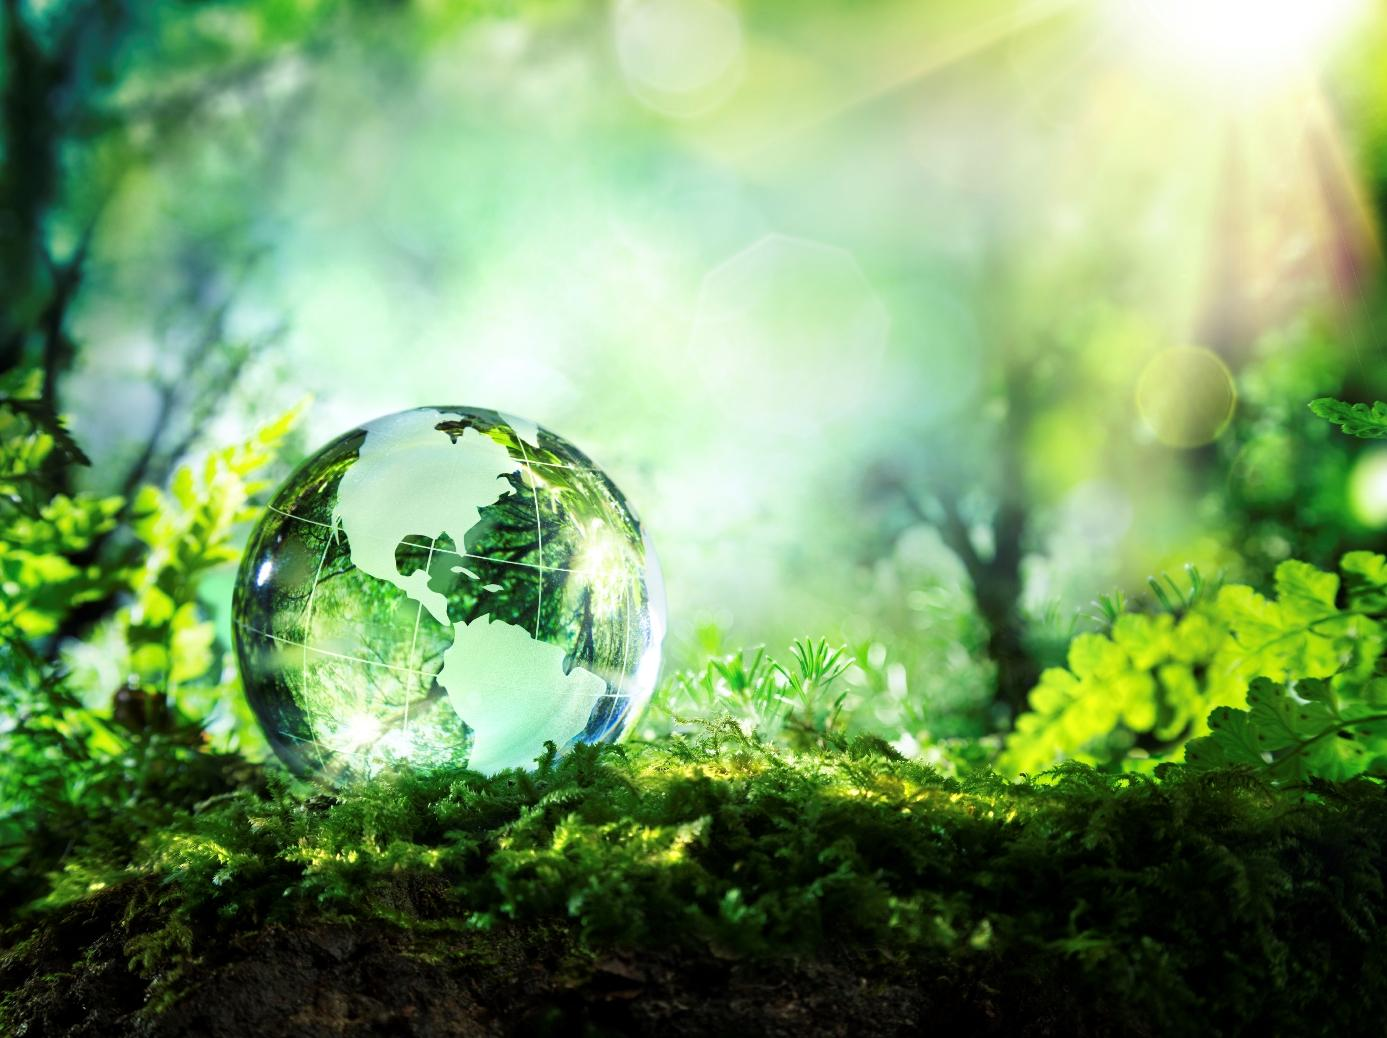 The Age of Change - How the Business World Has Become More Eco-Friendly in the 21st Century